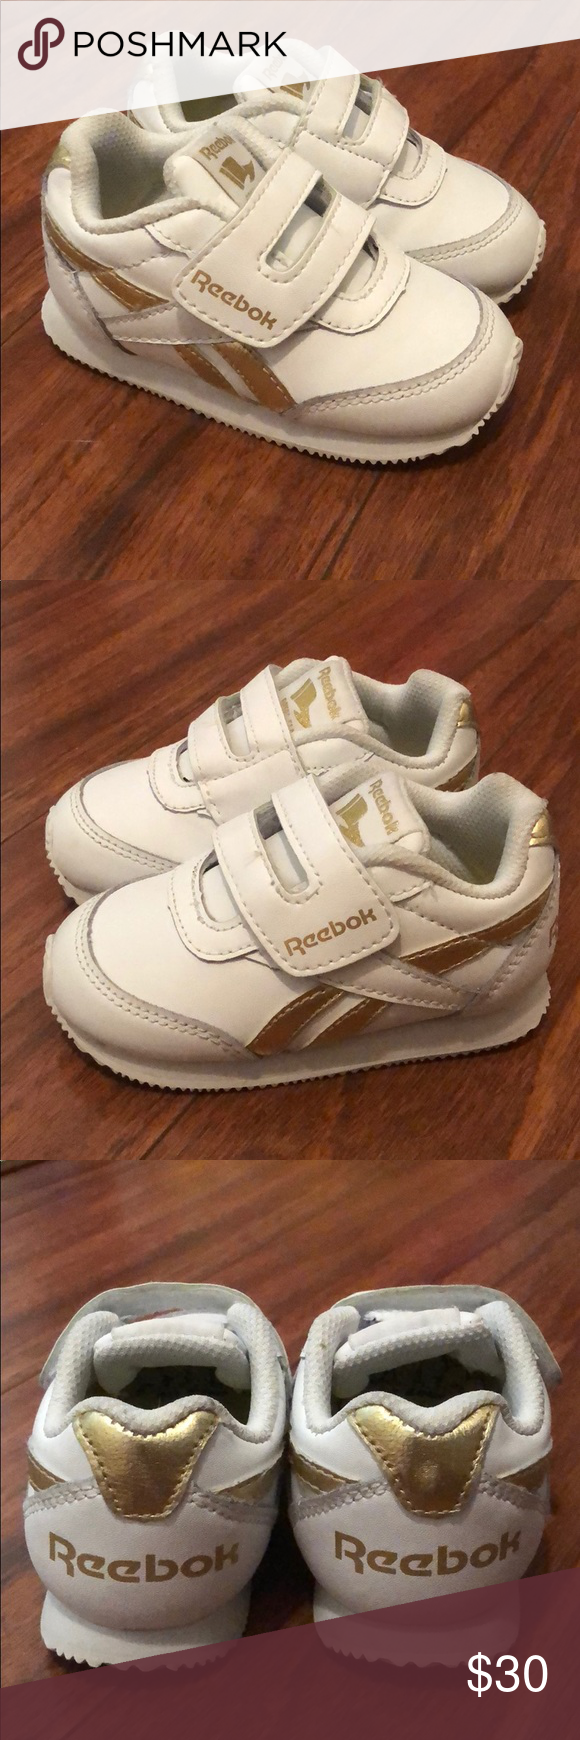 5d15f31640a Classic Reebok Peek N Fit Ortholite Kids Used many times! Great walking  shoes! Clean and in good condition. Infant size 5 Reebok Shoes Sneakers